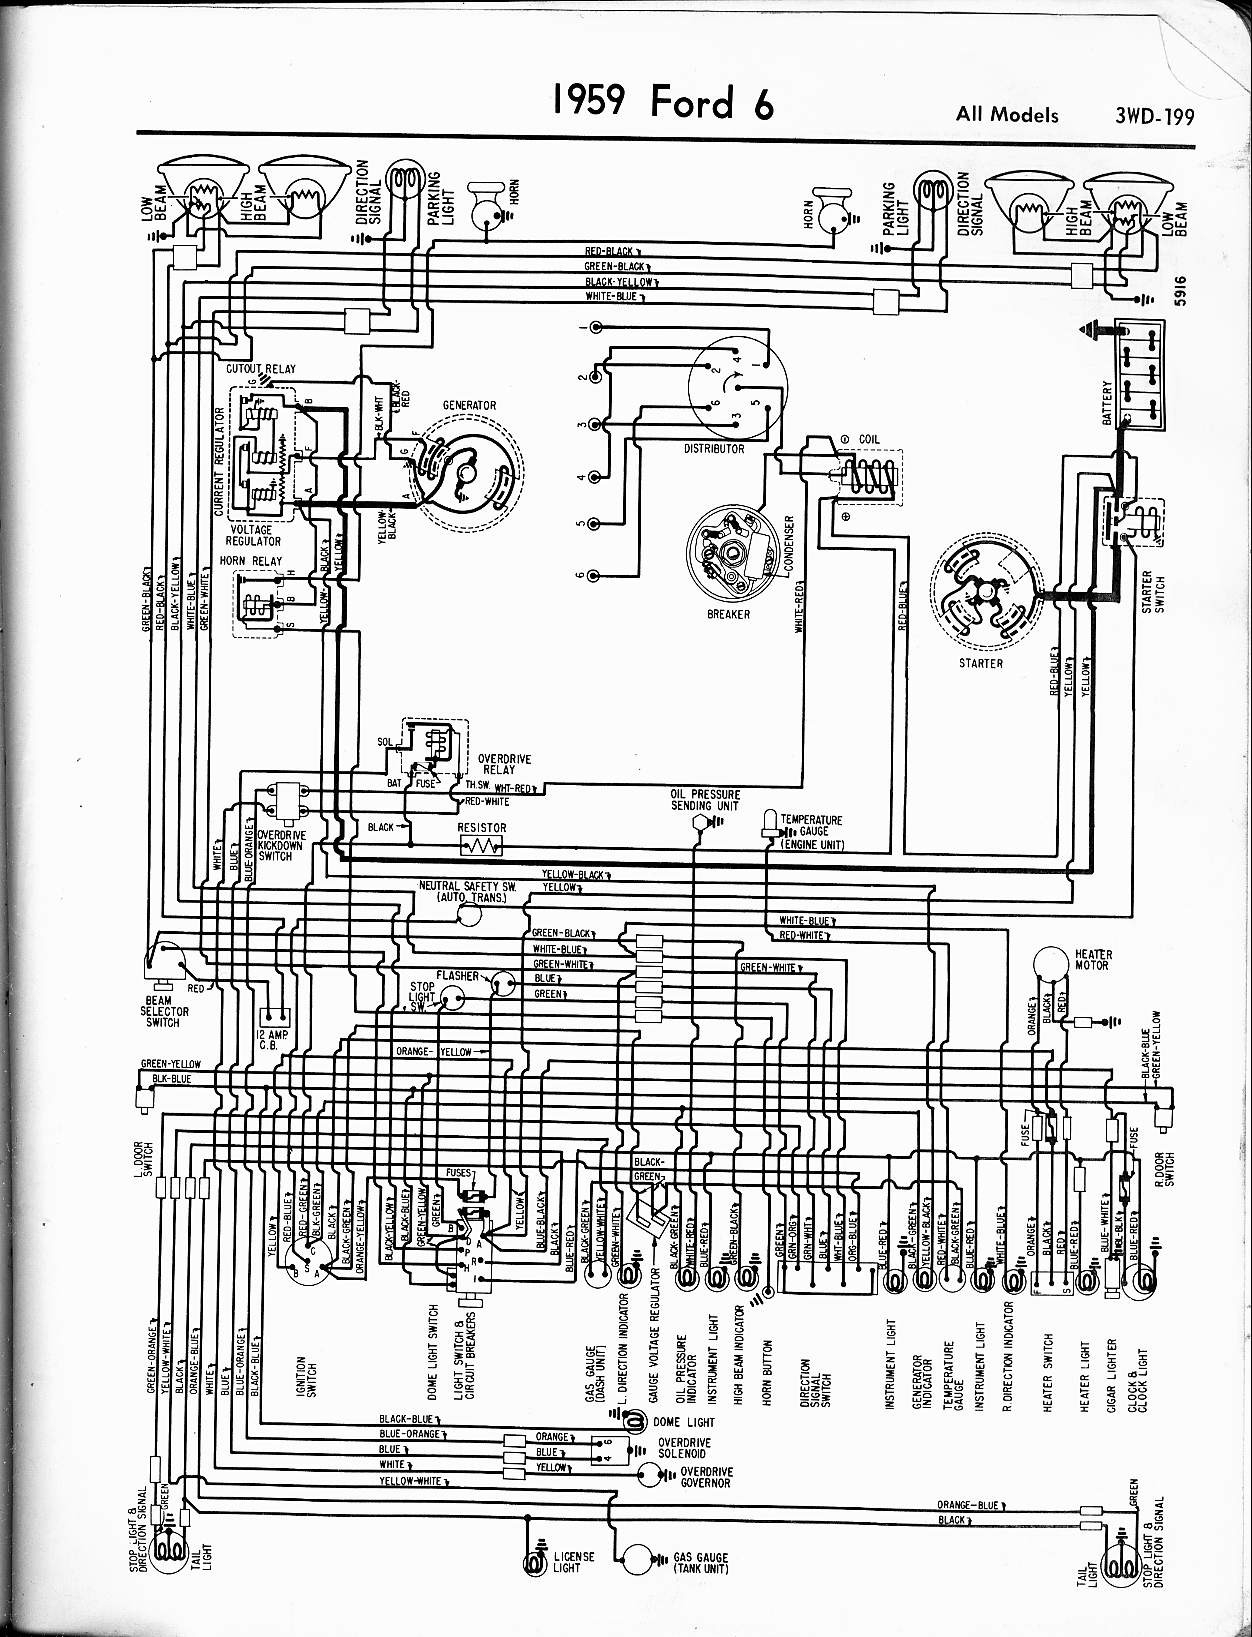 Swell 57 65 Ford Wiring Diagrams Wiring Cloud Intelaidewilluminateatxorg